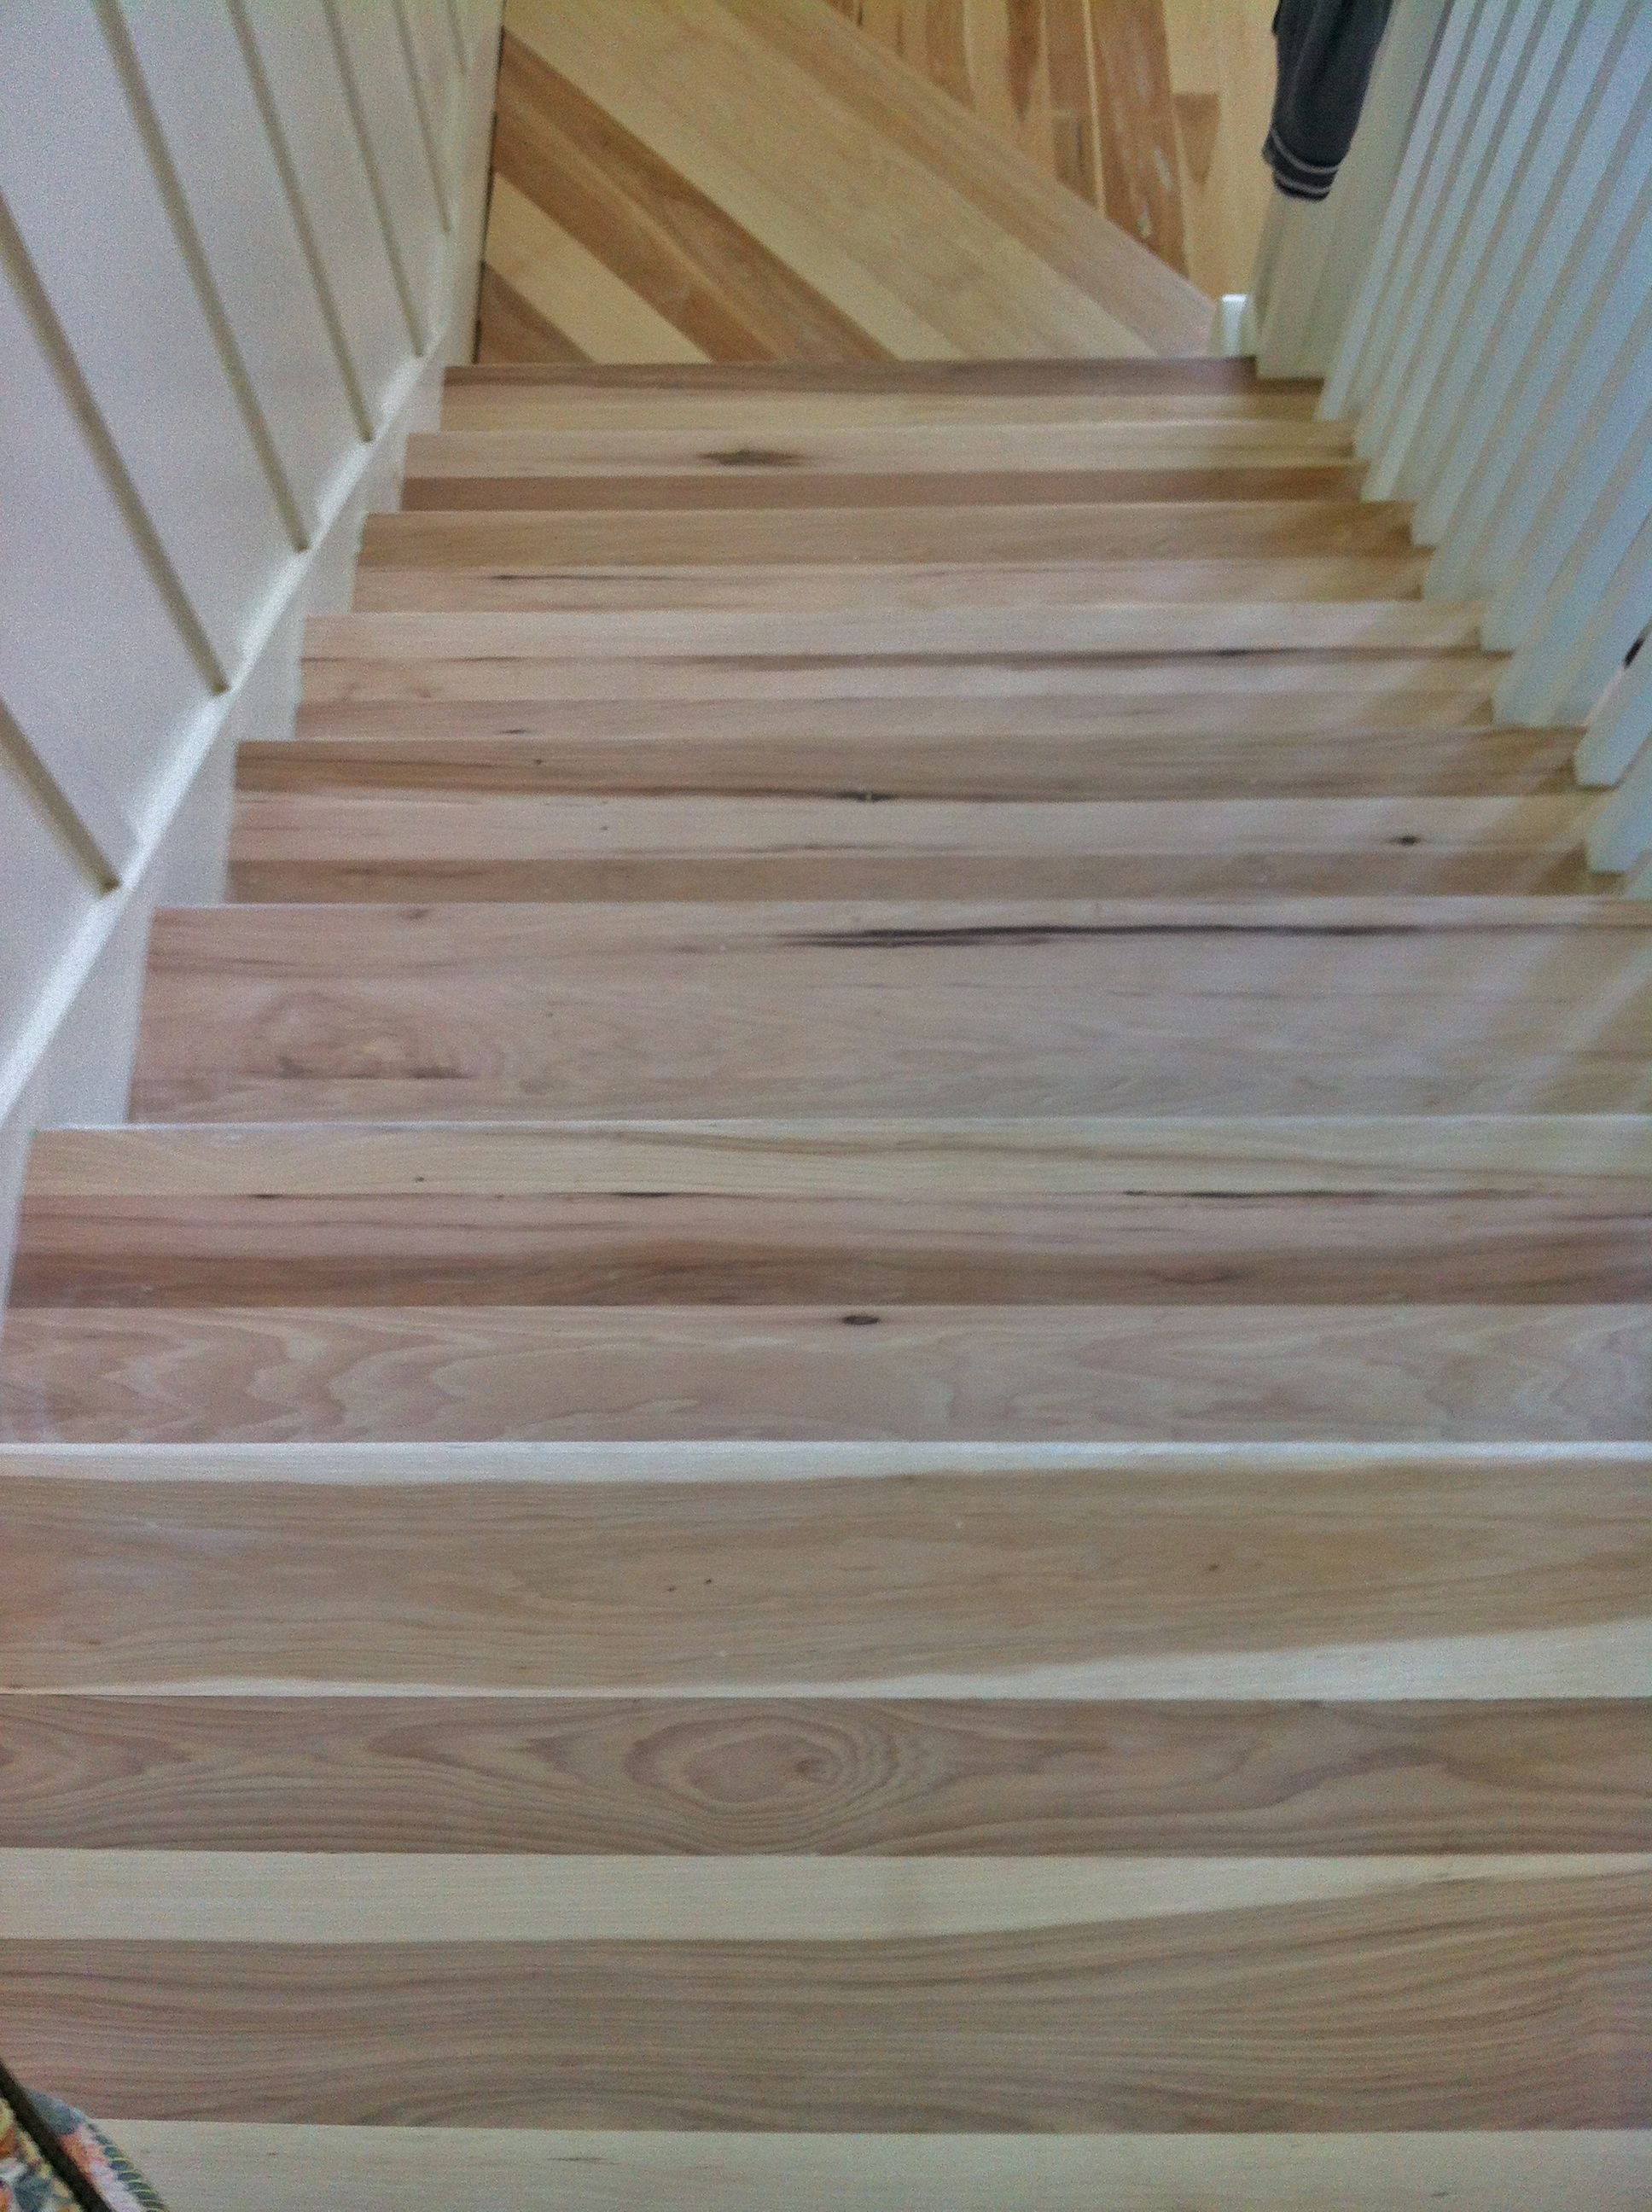 Hickory Stair Treads Before They Were Stained Dark Walnut Hardwood Flooring Jobs Done